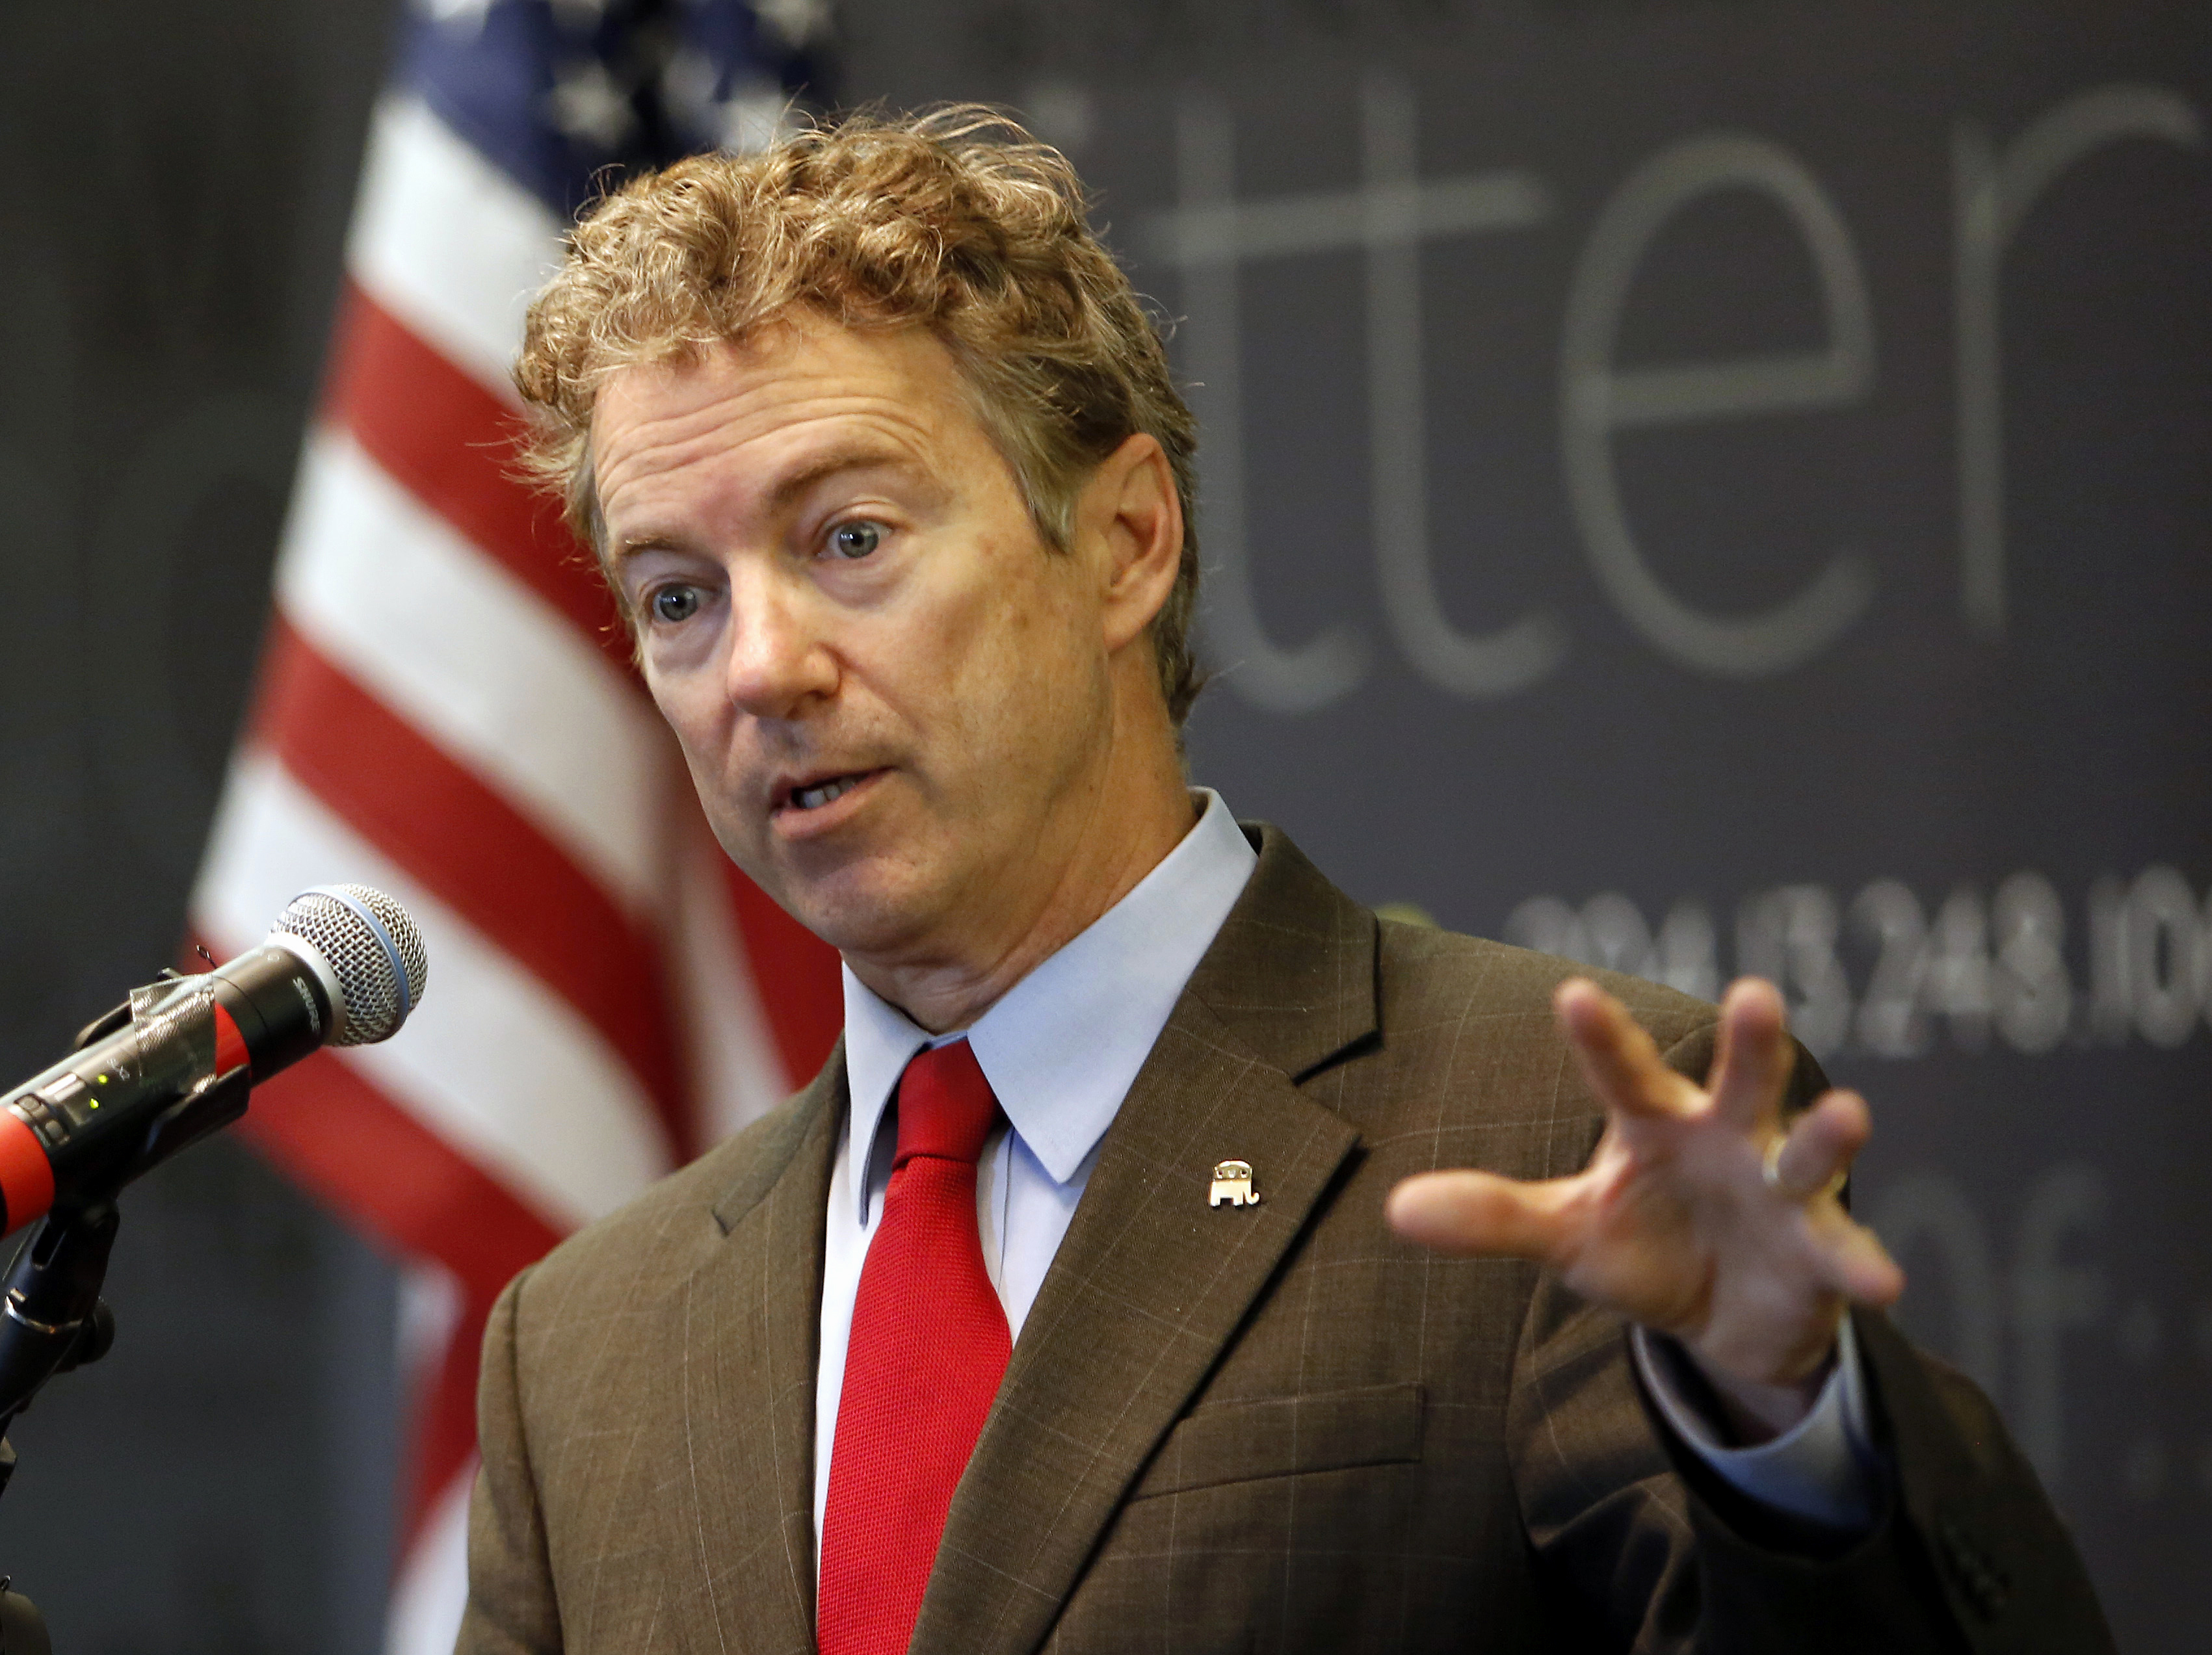 Rand Paul's climate quackery: A look at the 2016 contender's scary science denial